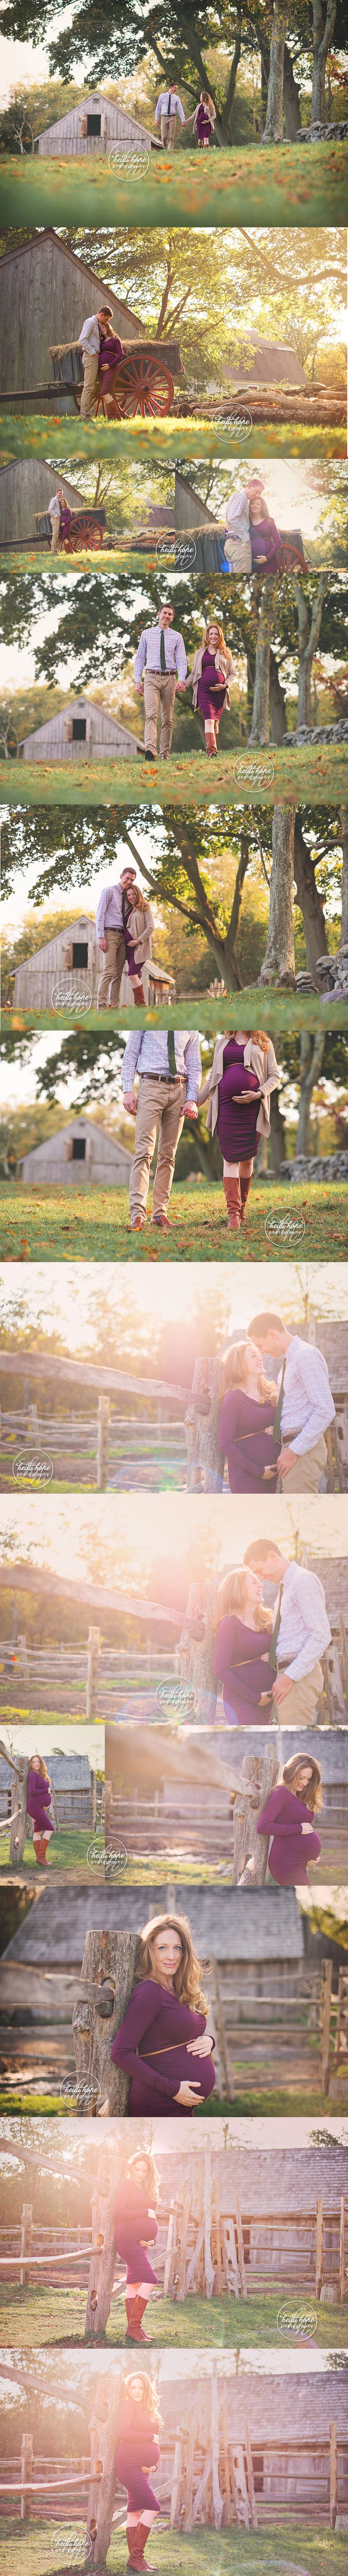 rhode-island-autumn-maternity-session-at-coggeshall-farm-in-bristol-2